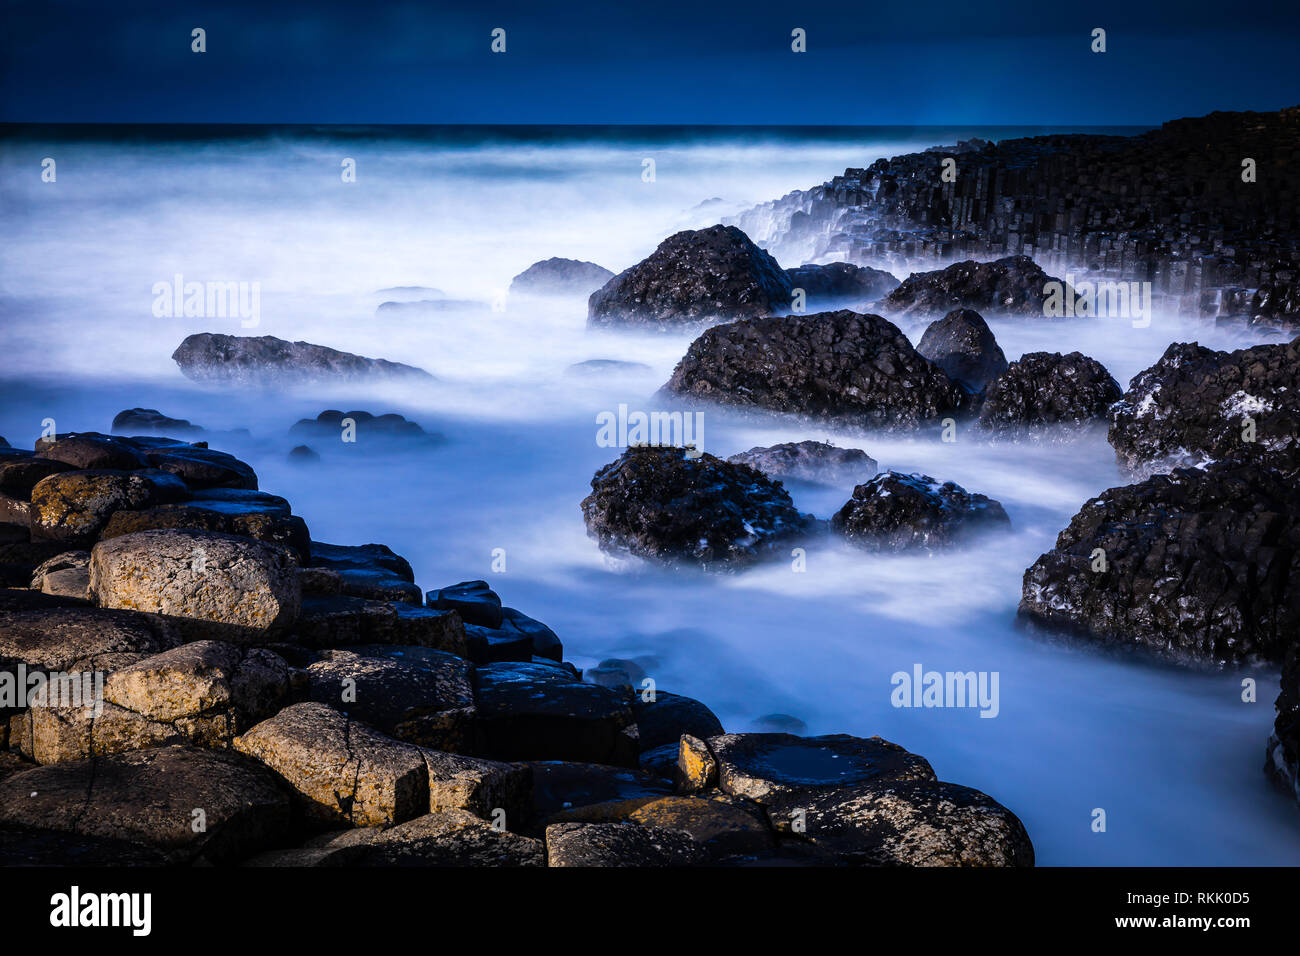 Giant's Causeway, Northern Ireland. 11th Feb 2019. Seasonal Weather pictured at Giant's Causeway, Northern Ireland as a mixed weather forecast is predicted for this week.  The Giant's Causeway is an area of about 40,000 interlocking basalt columns, the result of an ancient volcanic fissure eruption. It is located in County Antrim on the north coast of Northern Ireland, about three miles northeast of the town of Bushmills. Credit: Oliver Dixon/Alamy Live News Stock Photo